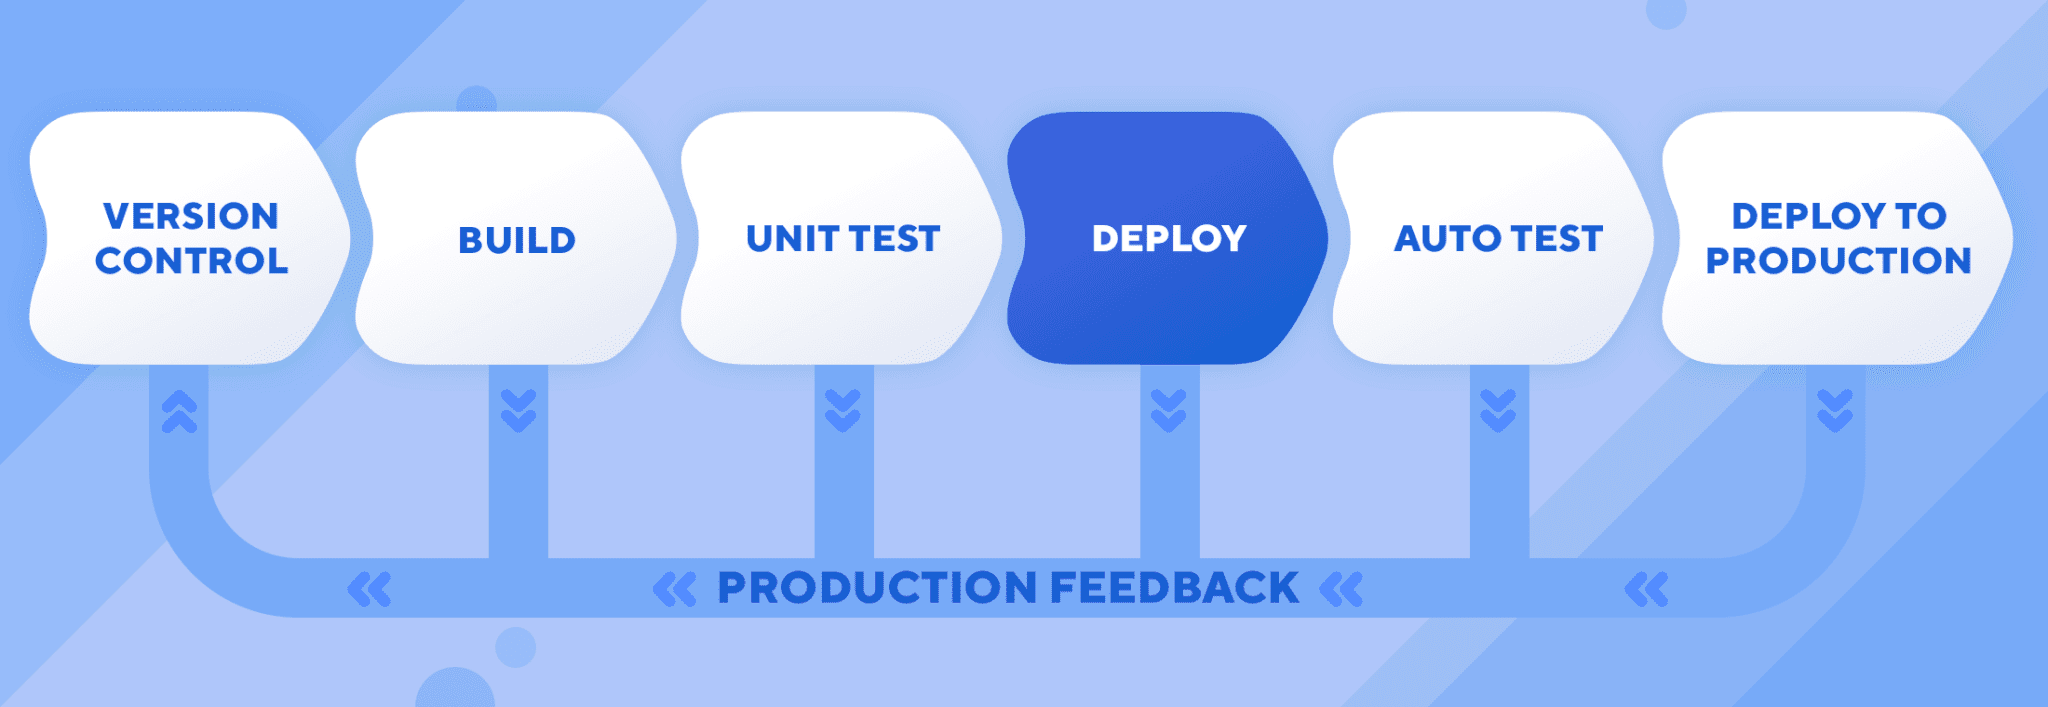 Product-feedback-deploy